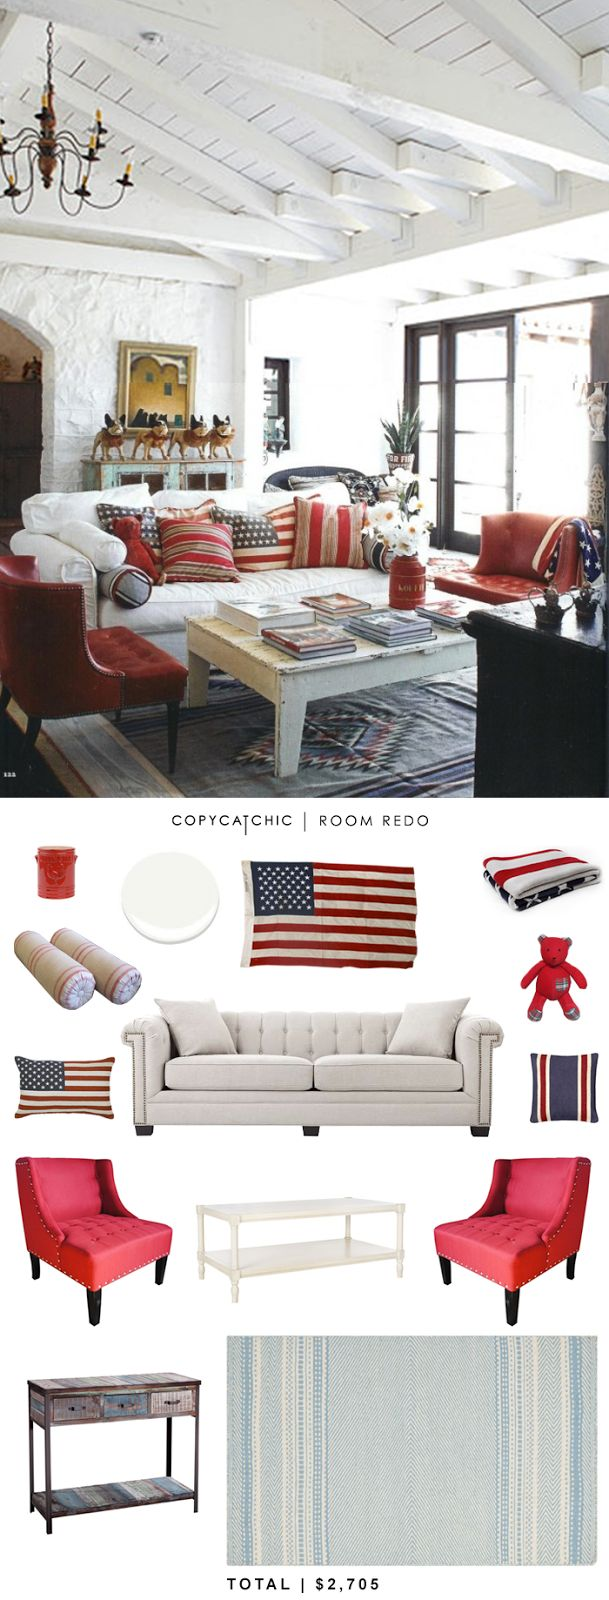 Room Redo Ideas top 25+ best patriotic room ideas on pinterest | patriotic